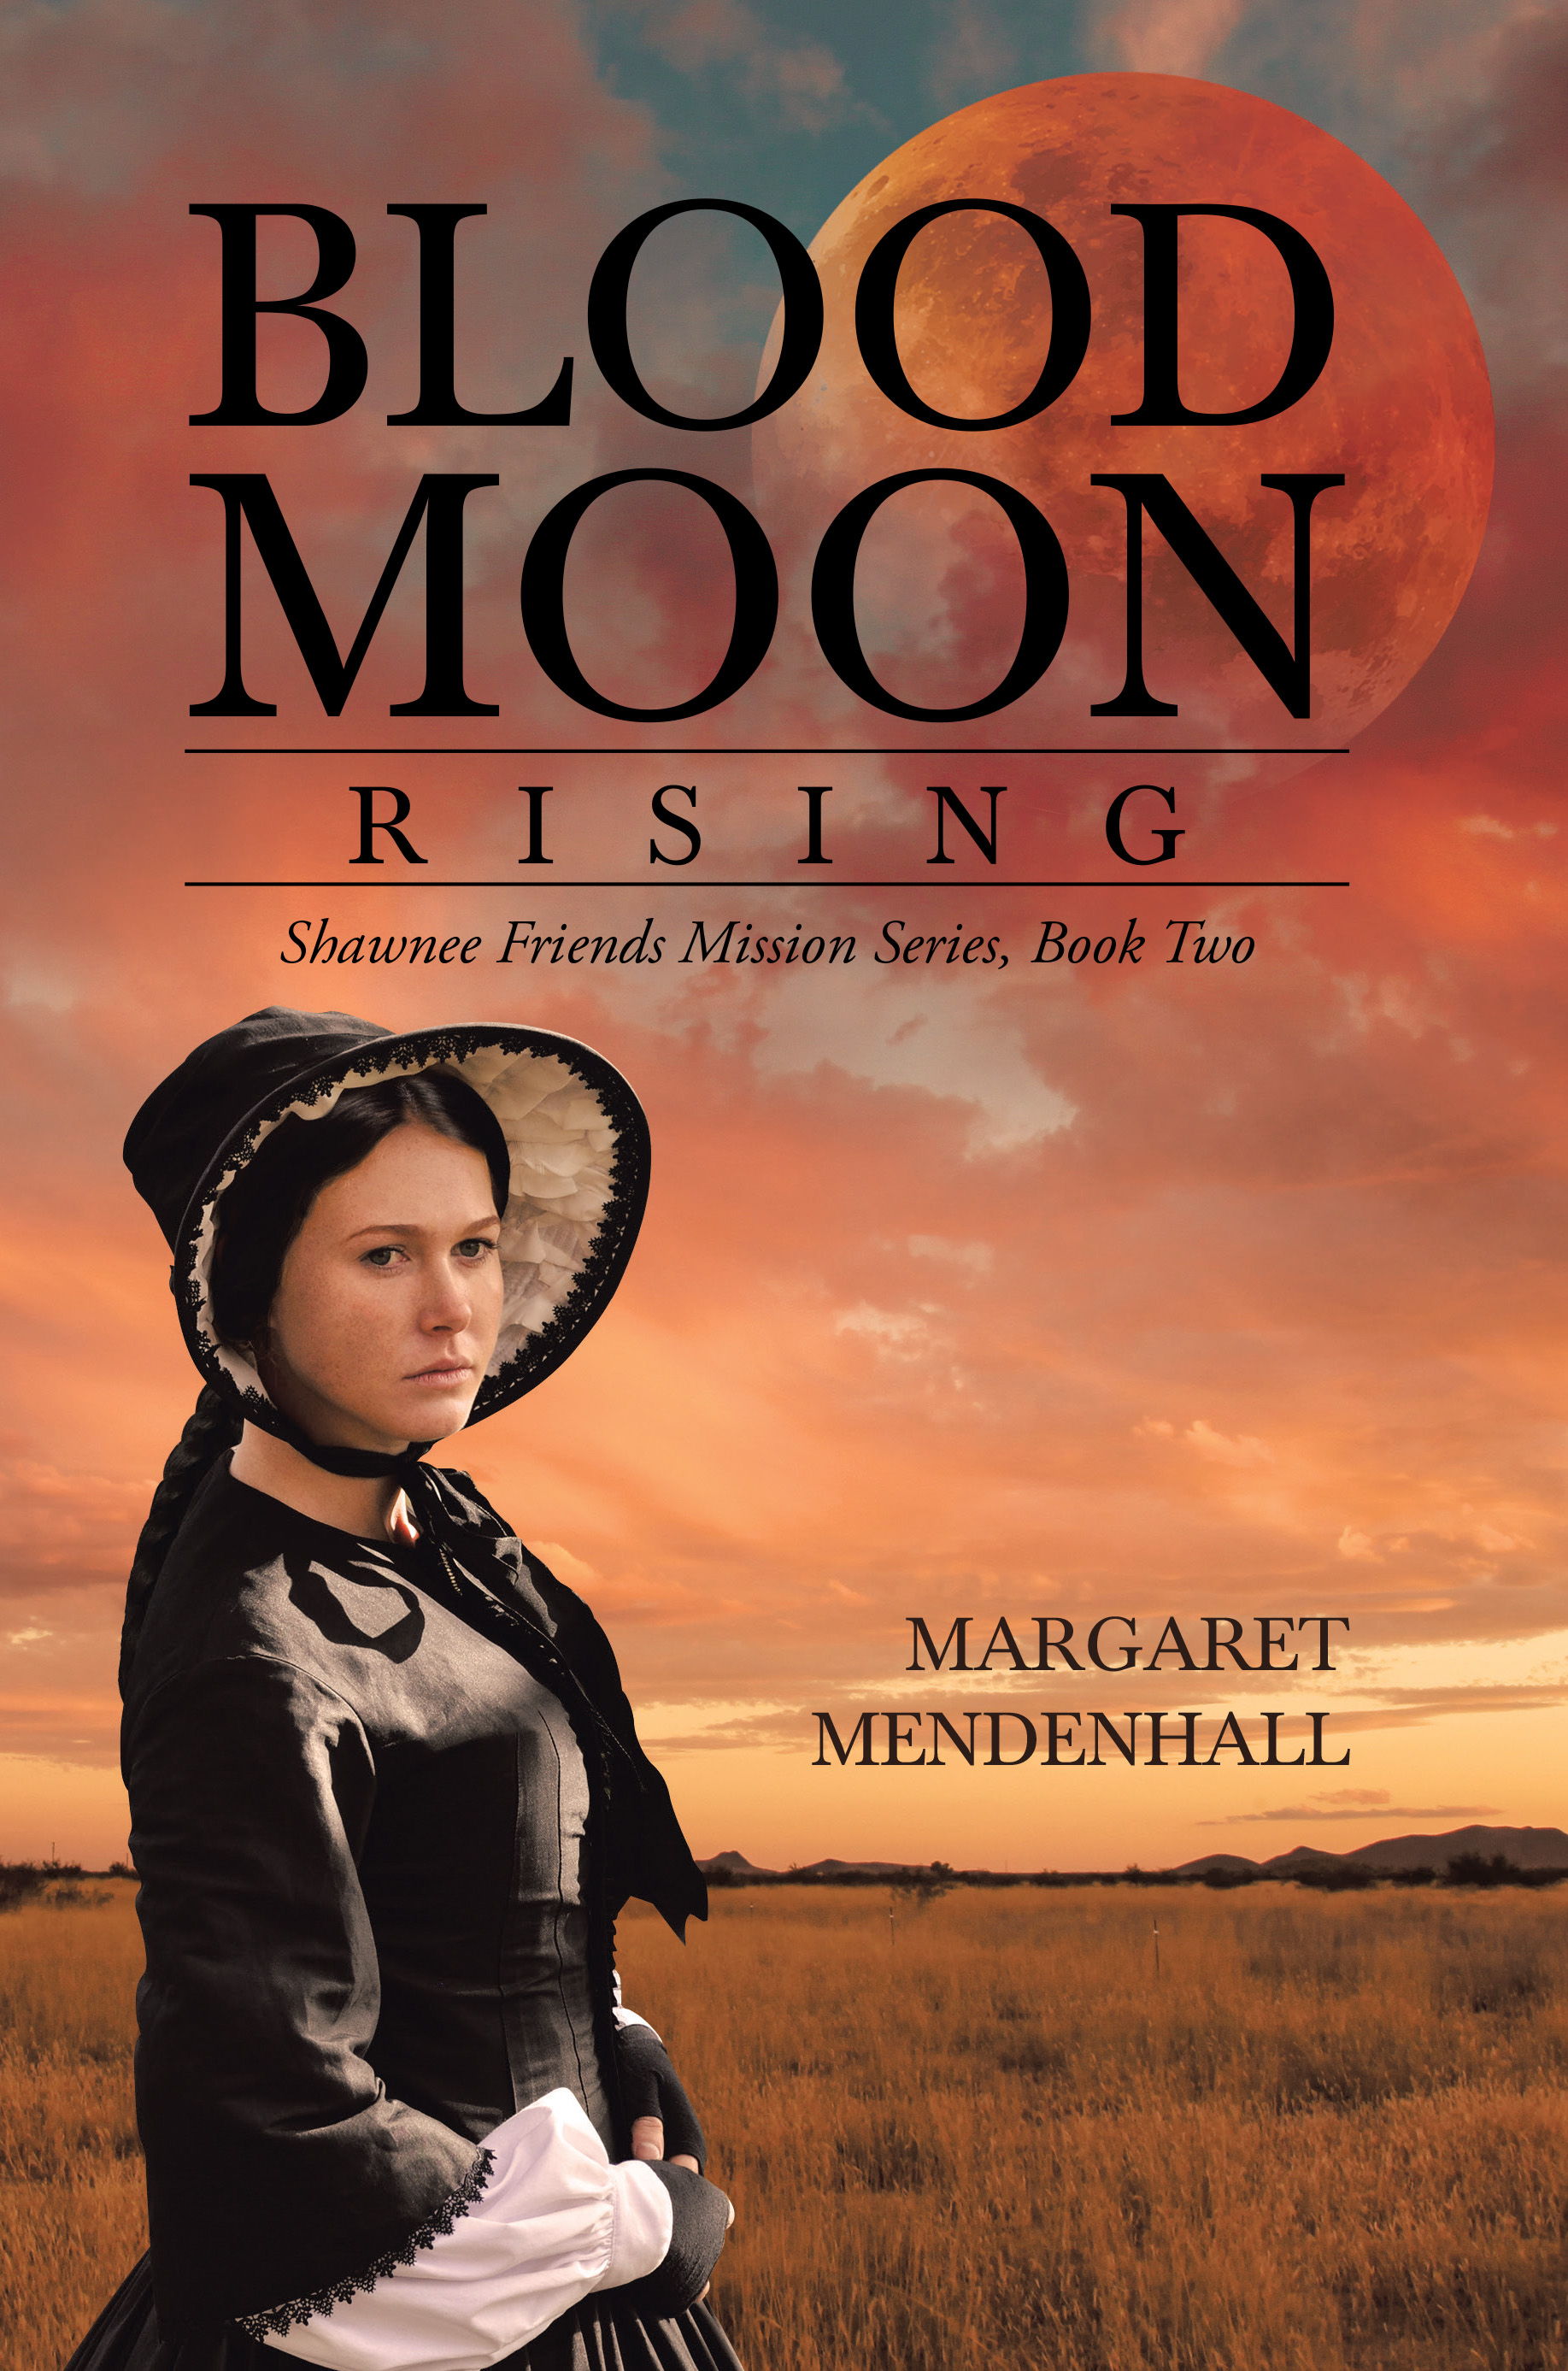 """NewsOn6 Reports """"Blood Moon Rising is riveting tale"""" - """"Blood Moon Rising: Shawnee Friends Mission Series, Book 2: a highly dramatic story that delves into a woman's harrowing moments of slavery and a quest for liberation.""""Continue Reading Here"""